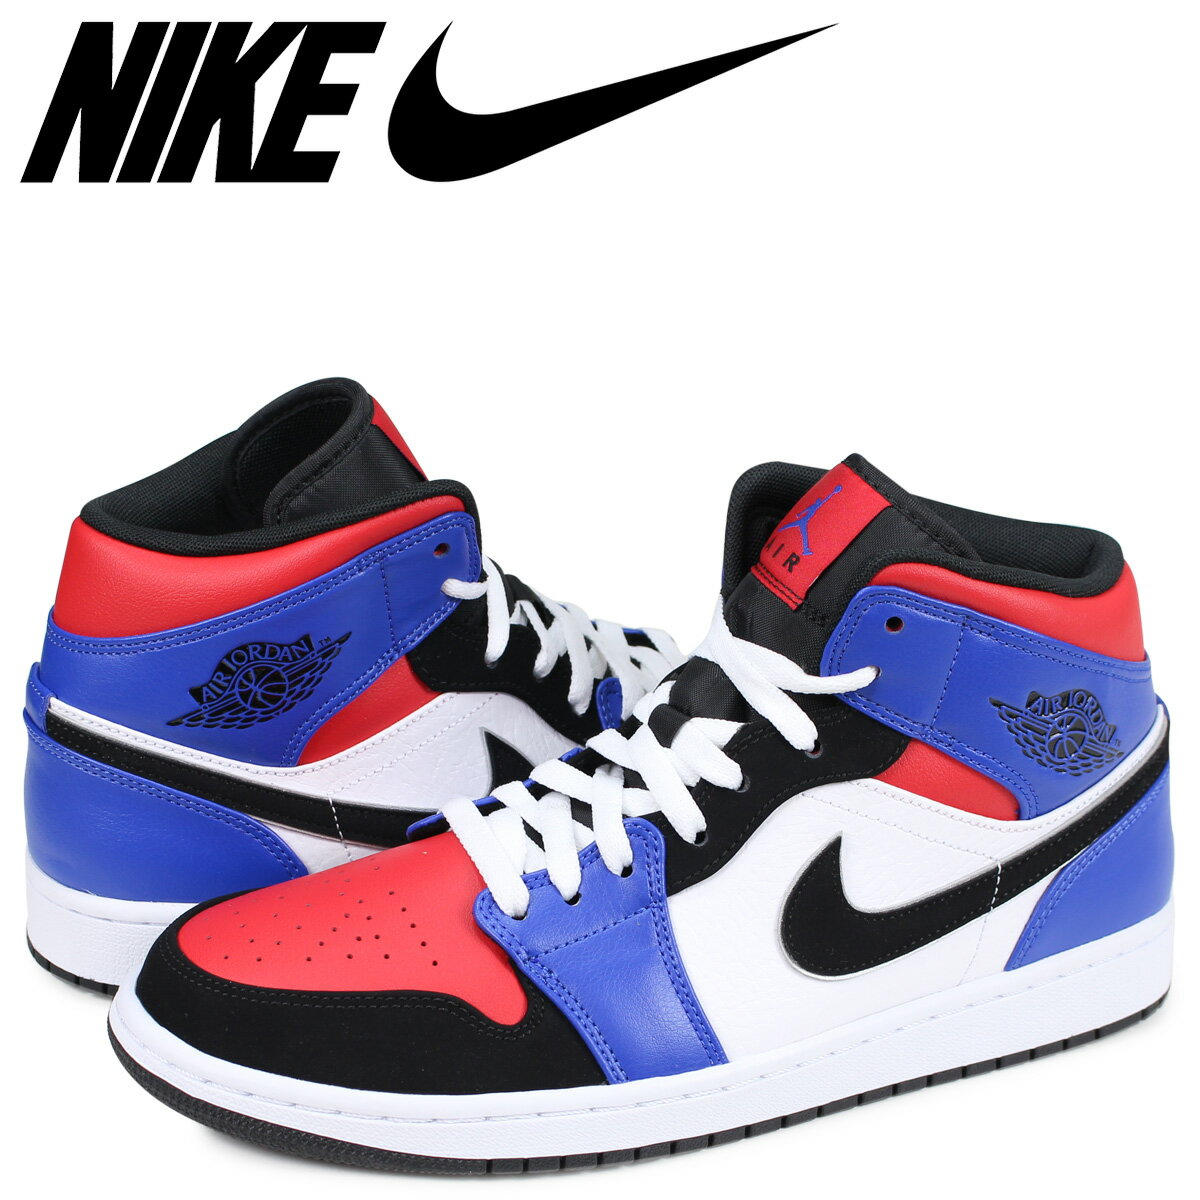 メンズ靴, スニーカー NIKE AIR JORDAN 1 MID TOP3 1 554724-124